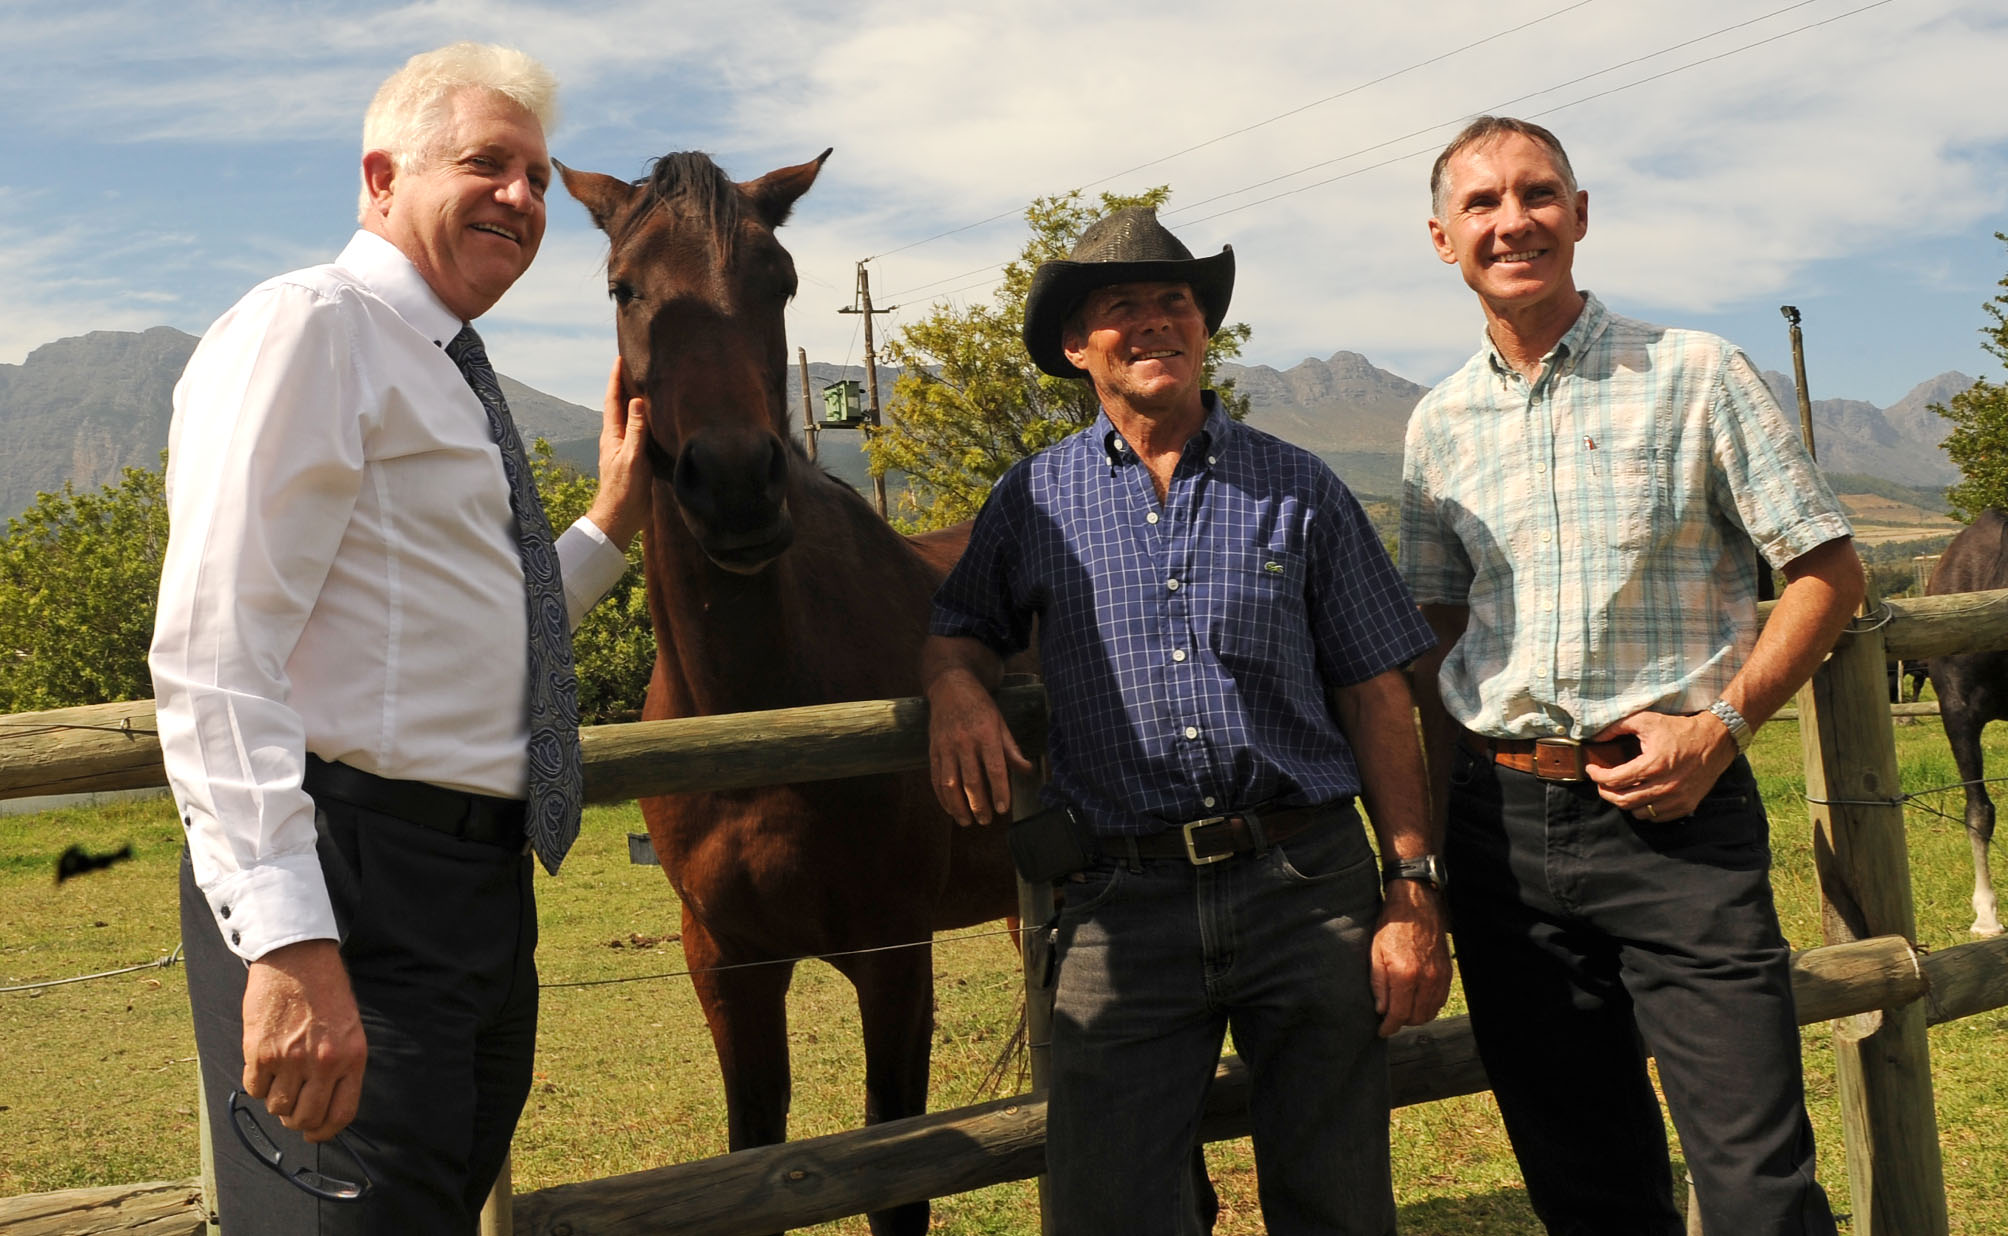 Minister Alan Winde visited a Paarl farm where a horse died after an AHS infection. Minister met with the farm owner.